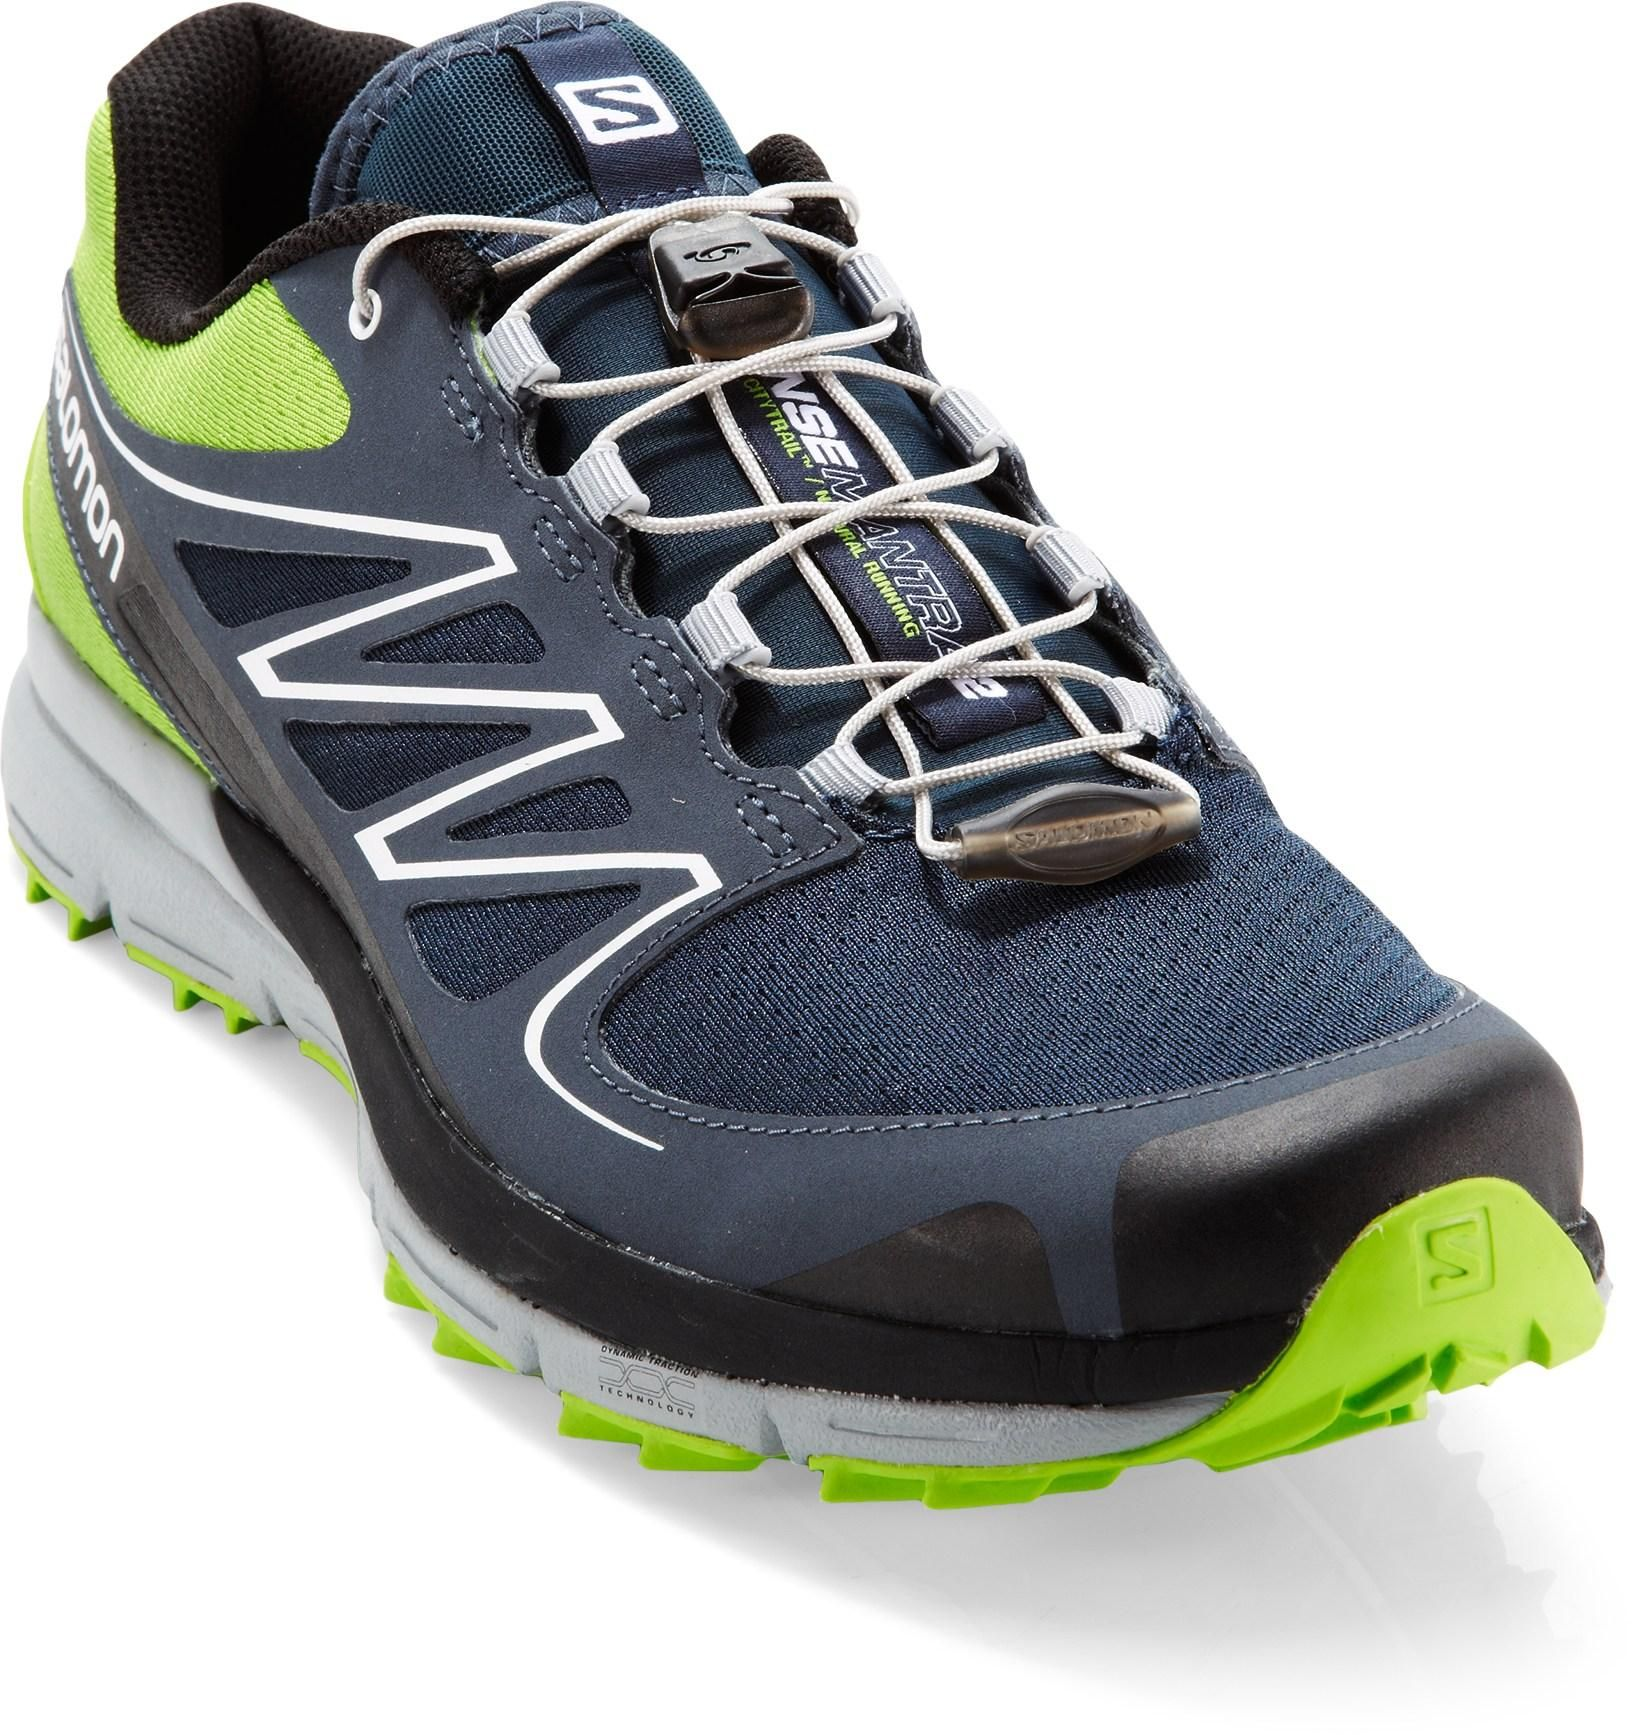 Salomon Sense Mantra 2 TrailRunning Shoes  Mens from REI on Catalog  Spree my personal digital mall